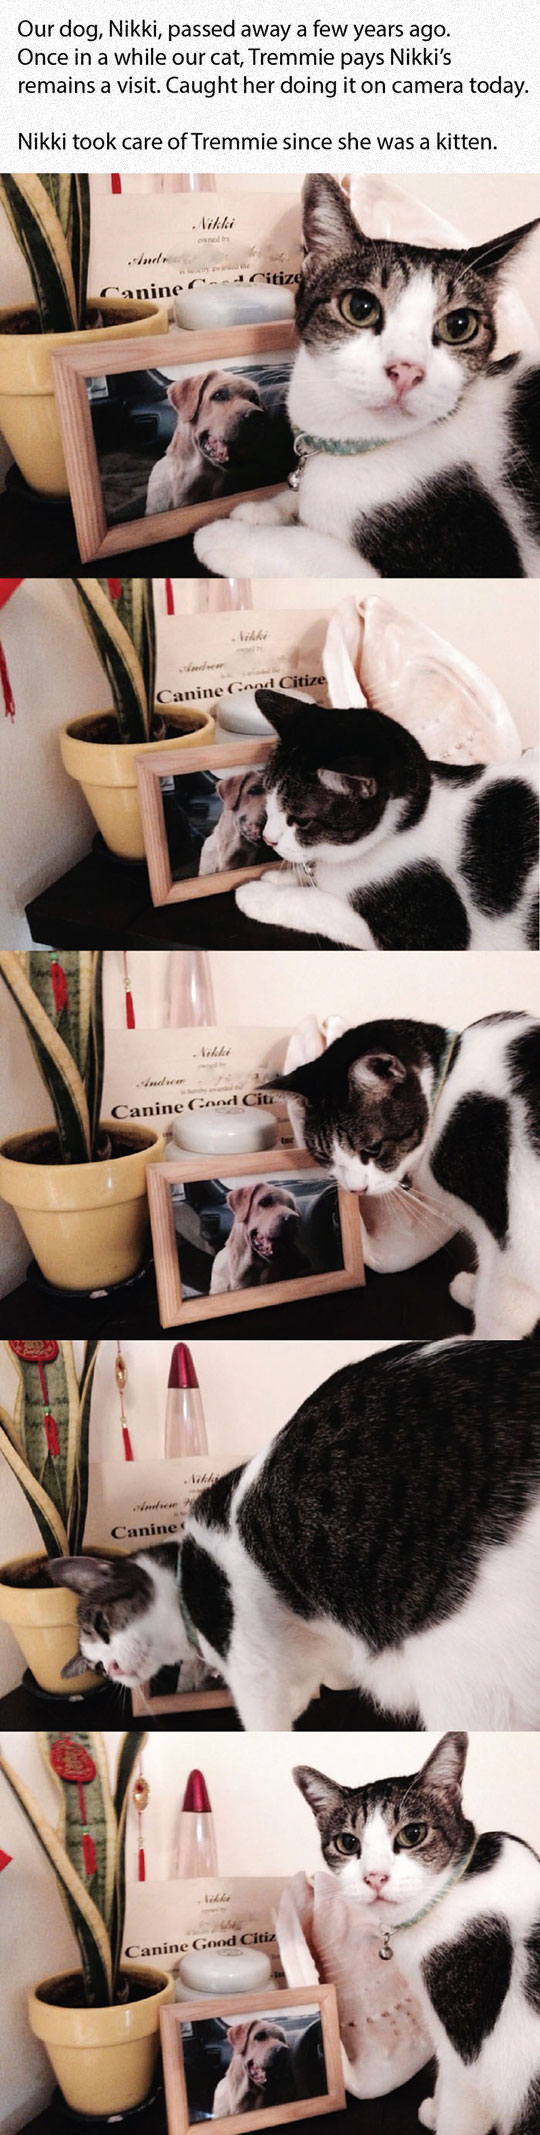 cute-cat-missing-dog-frame